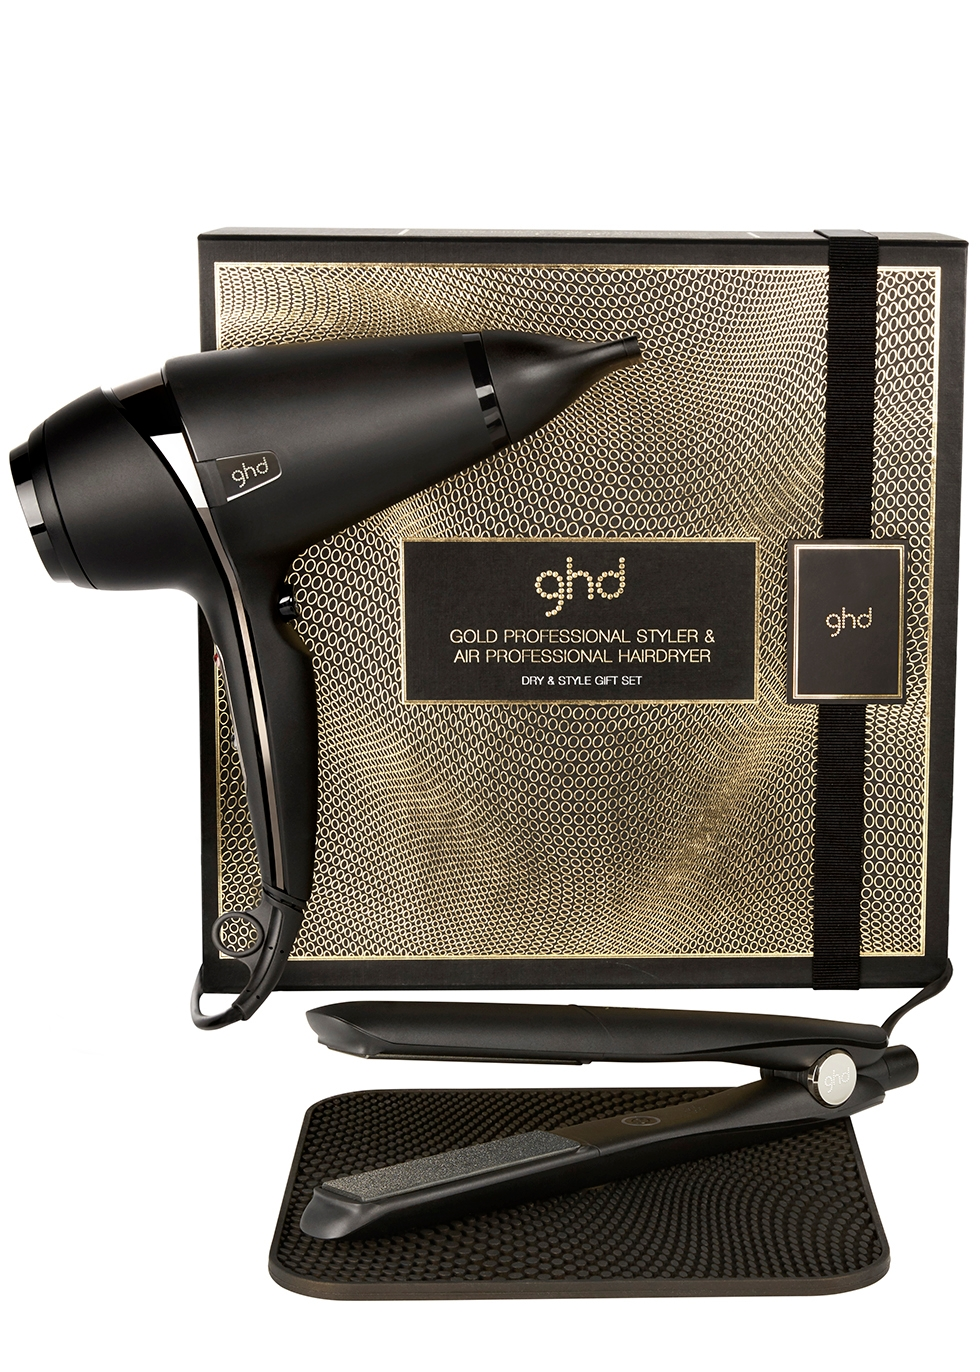 Dry And Style Gift Set - ghd